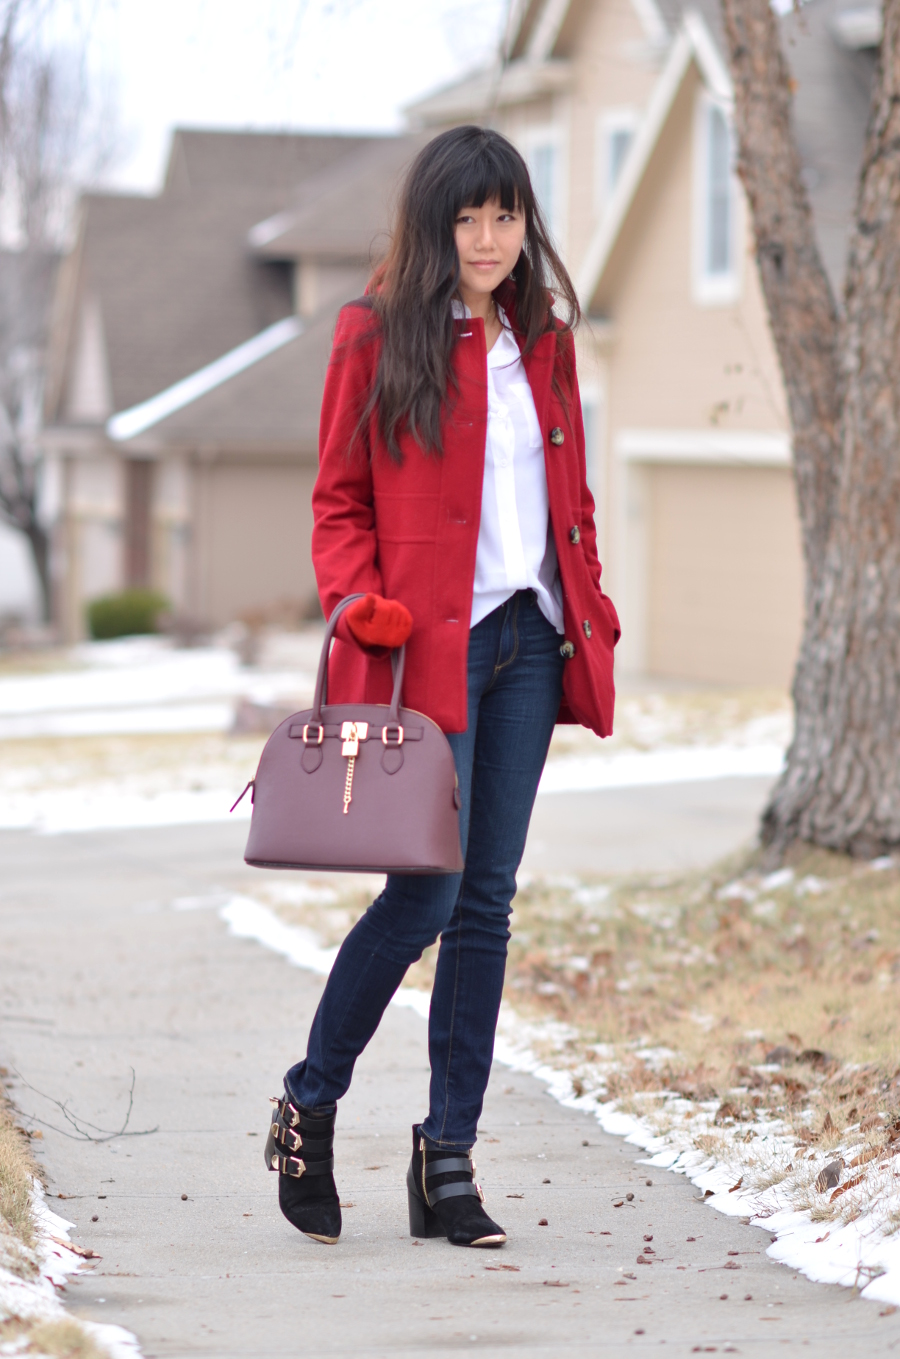 winter snowy red coat outfit